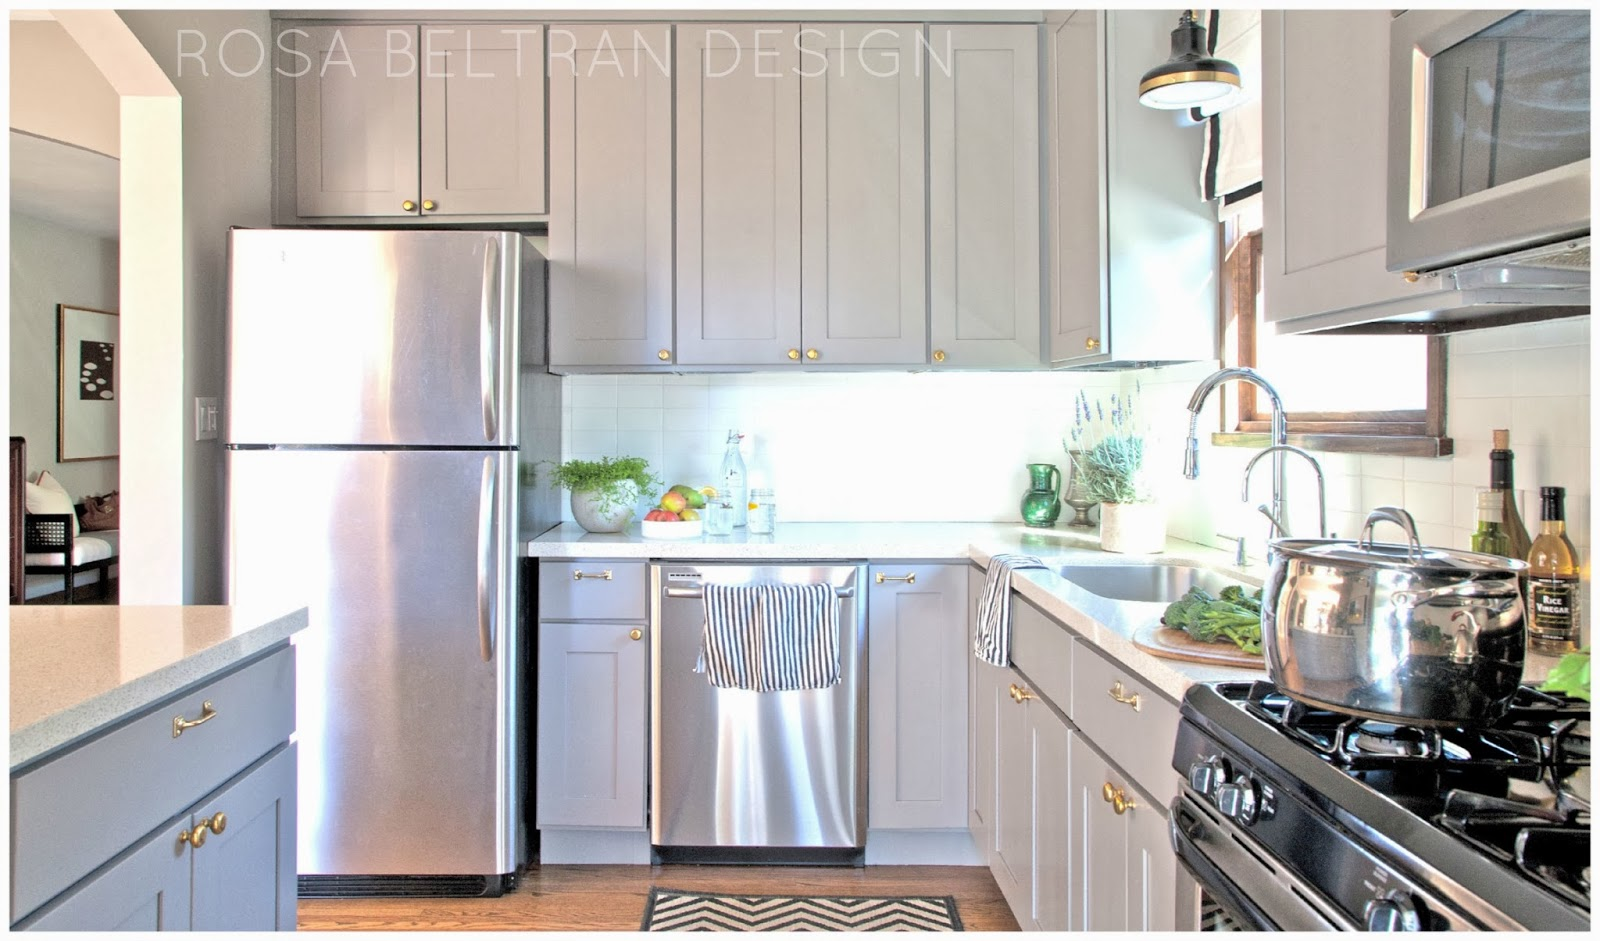 Diy Kitchen Cabinets ~ Rosa beltran design diy painted kitchen cabinets